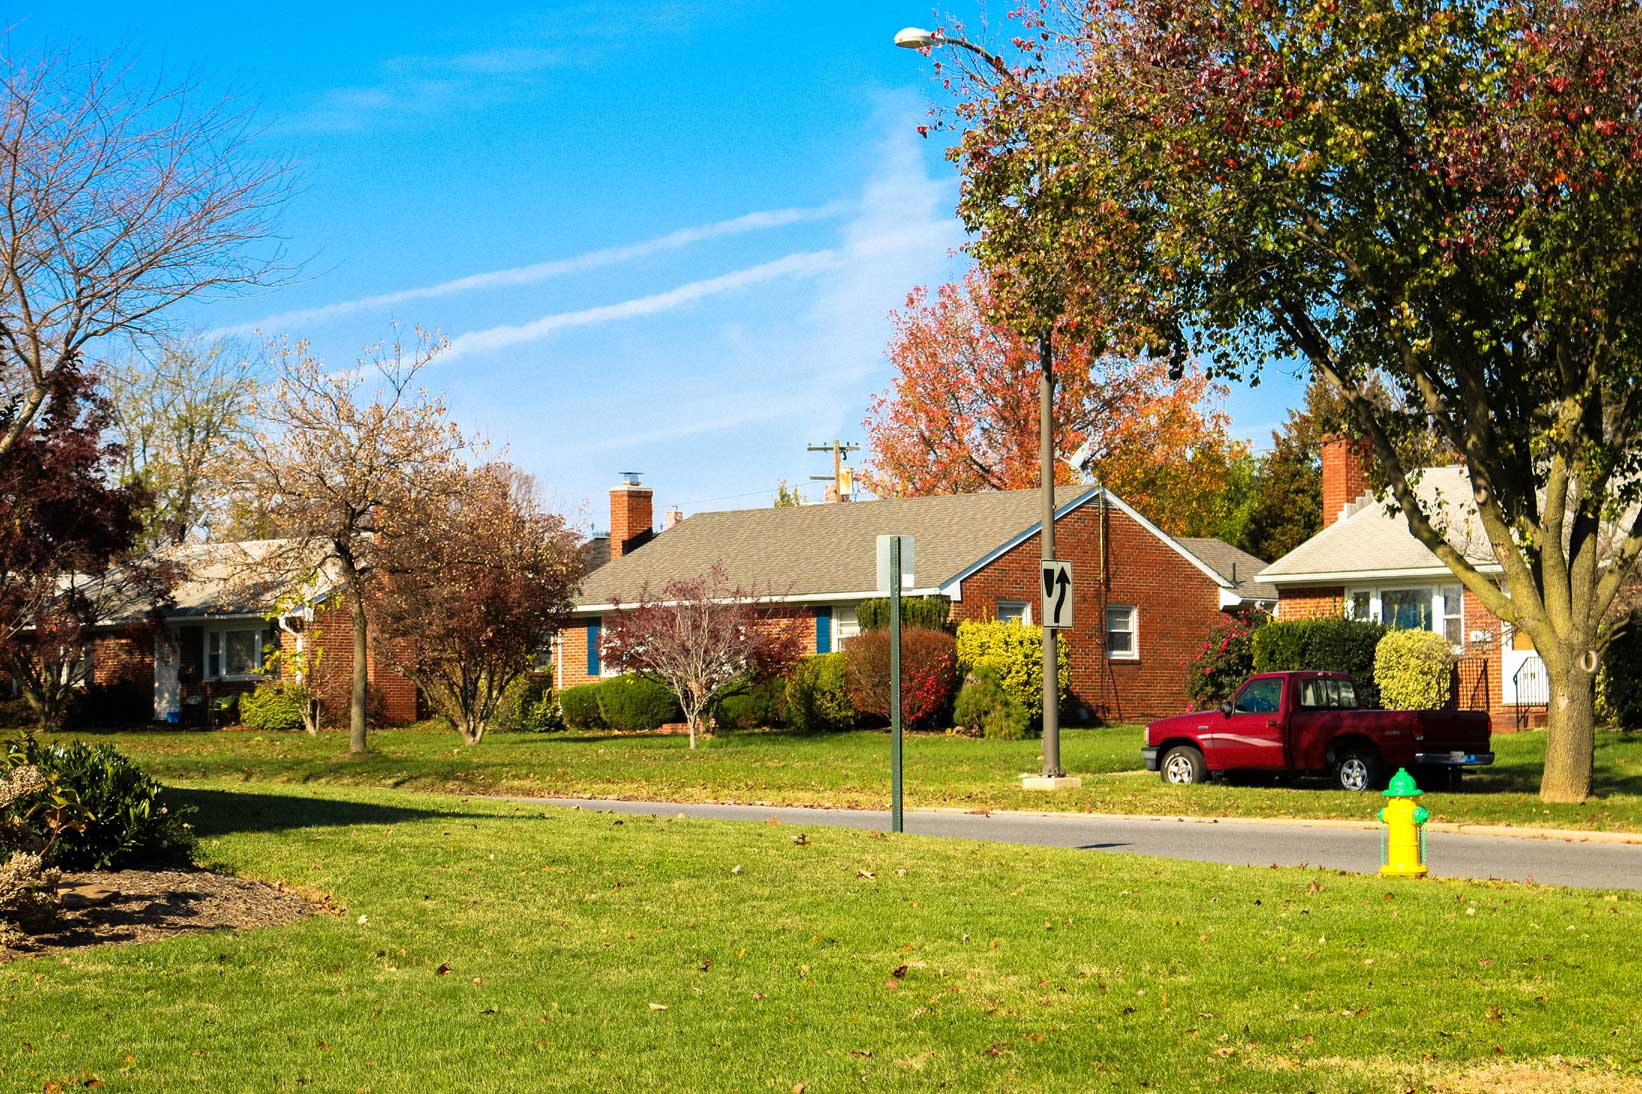 Residential neighborhood in Frederick, MD